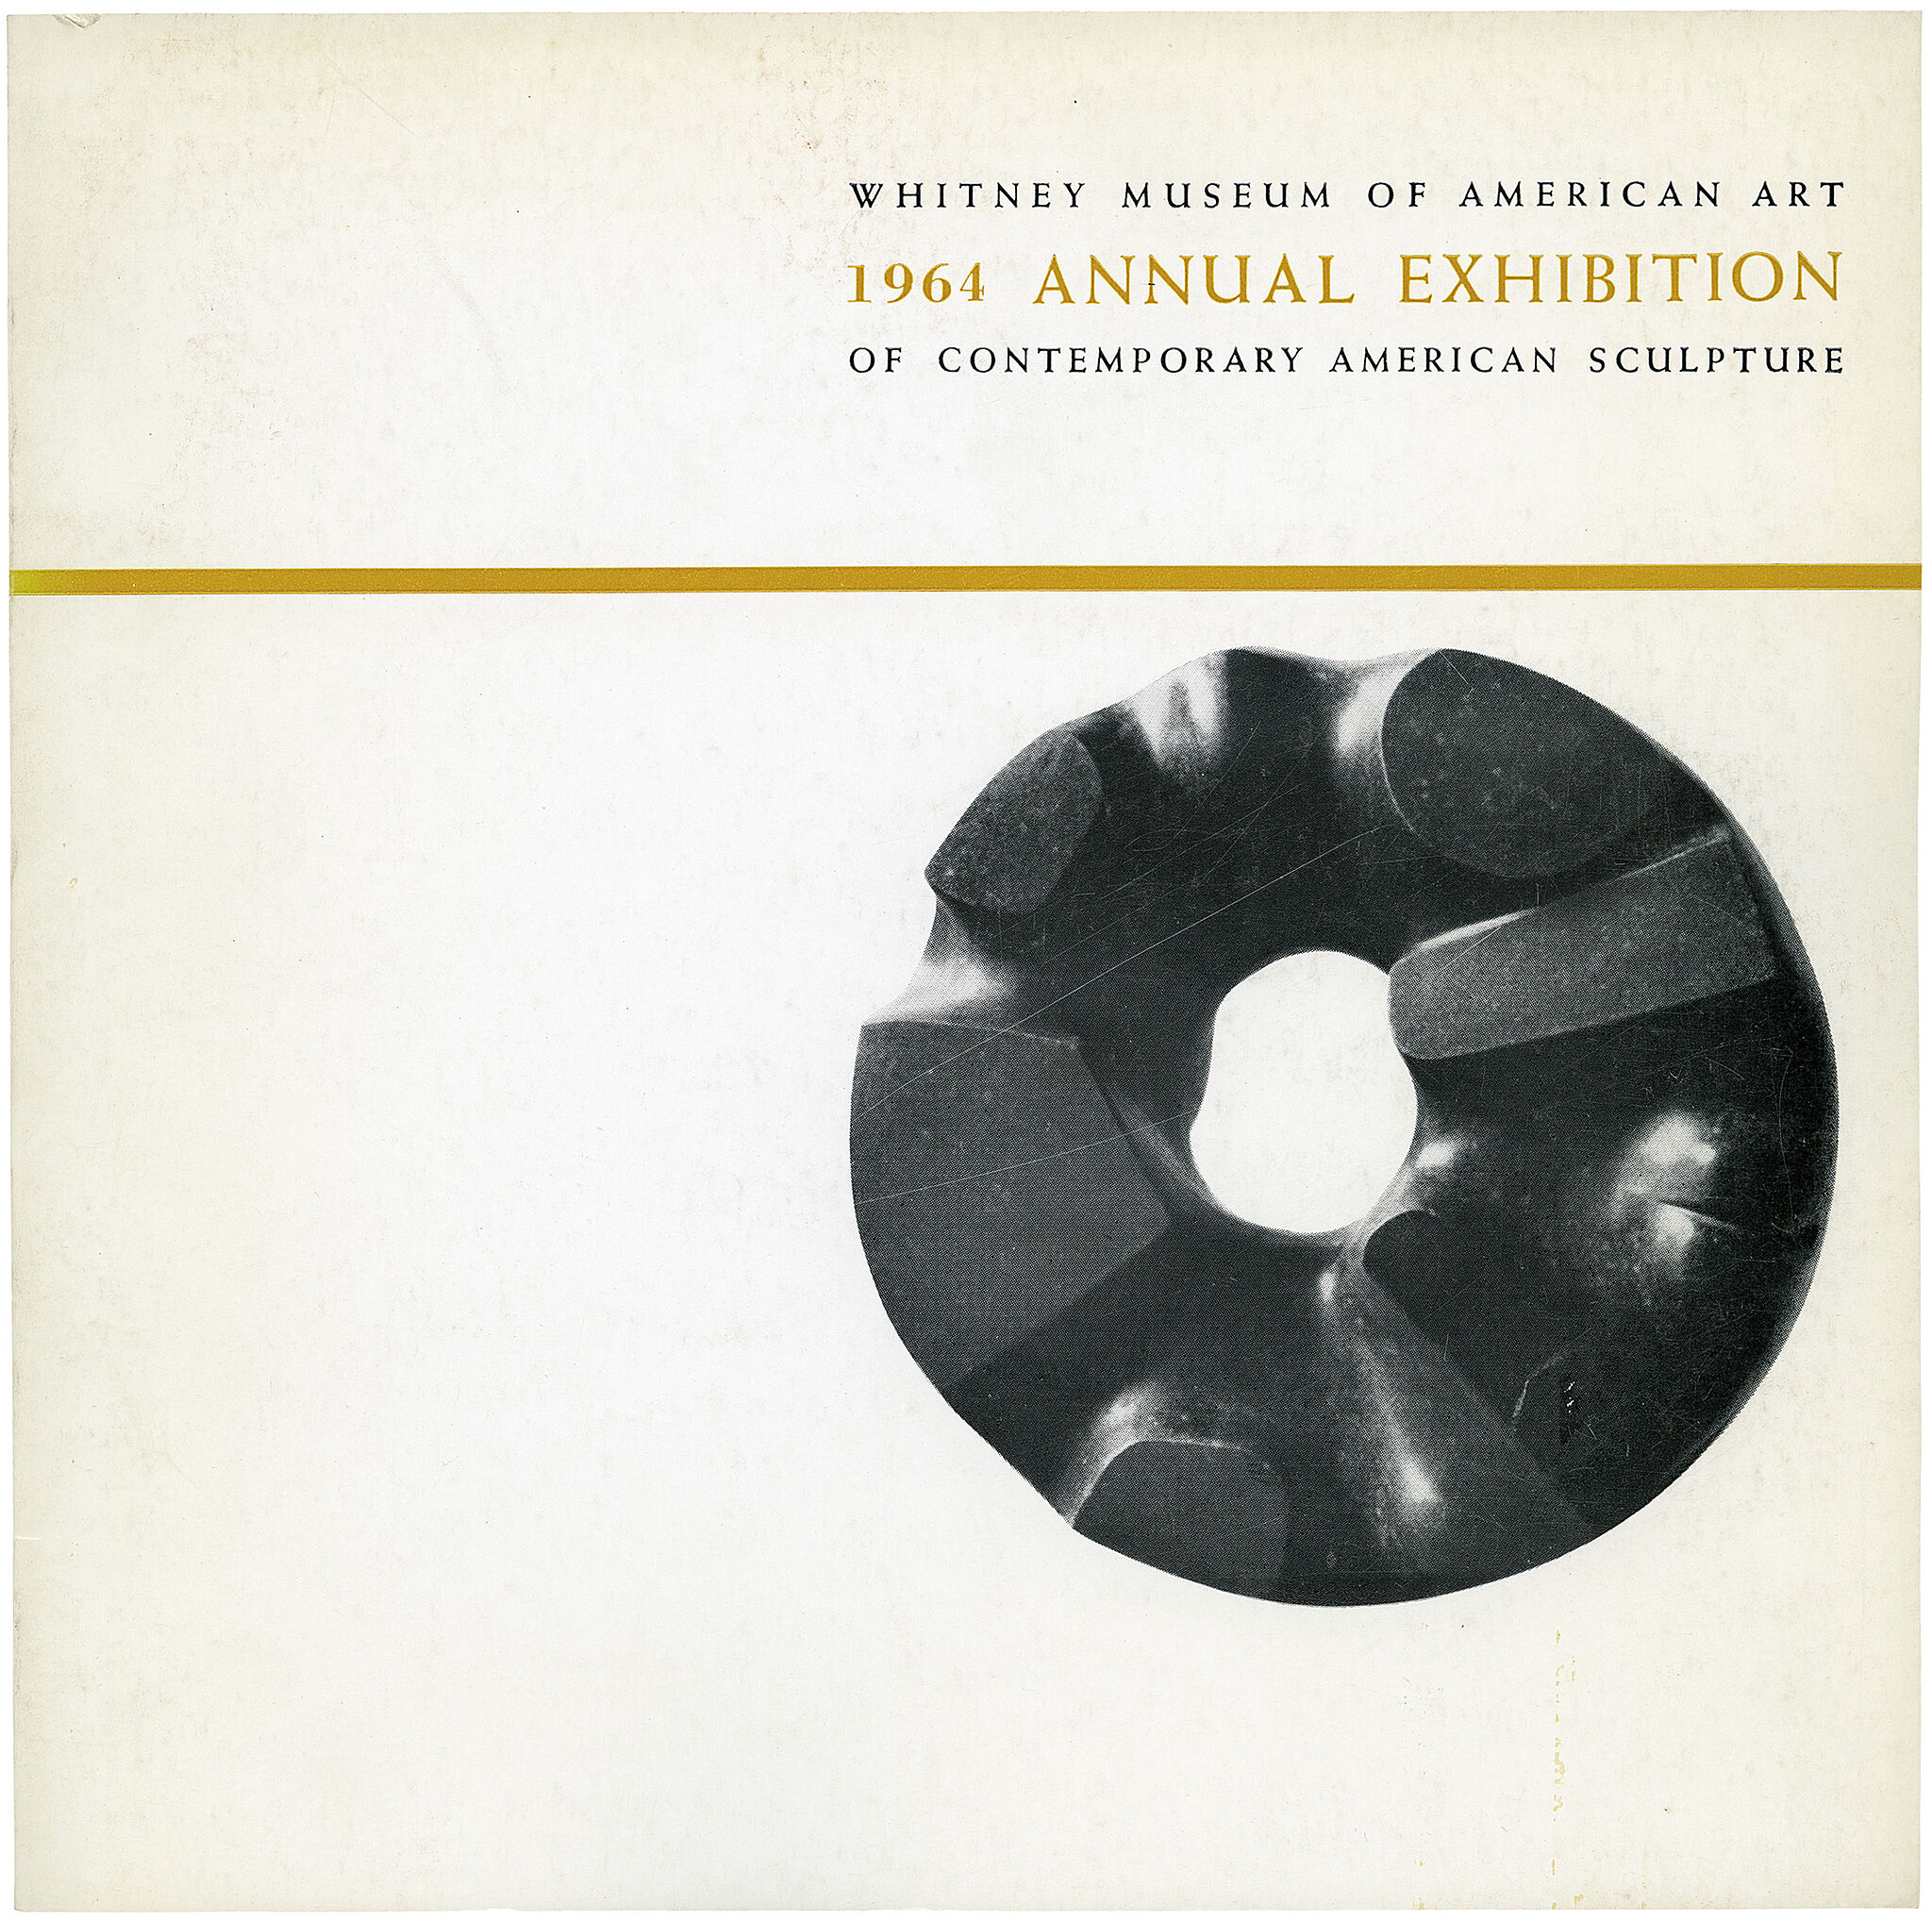 Cover for 1964 Annual Exhibition of Contemporary American Sculpture catalogue